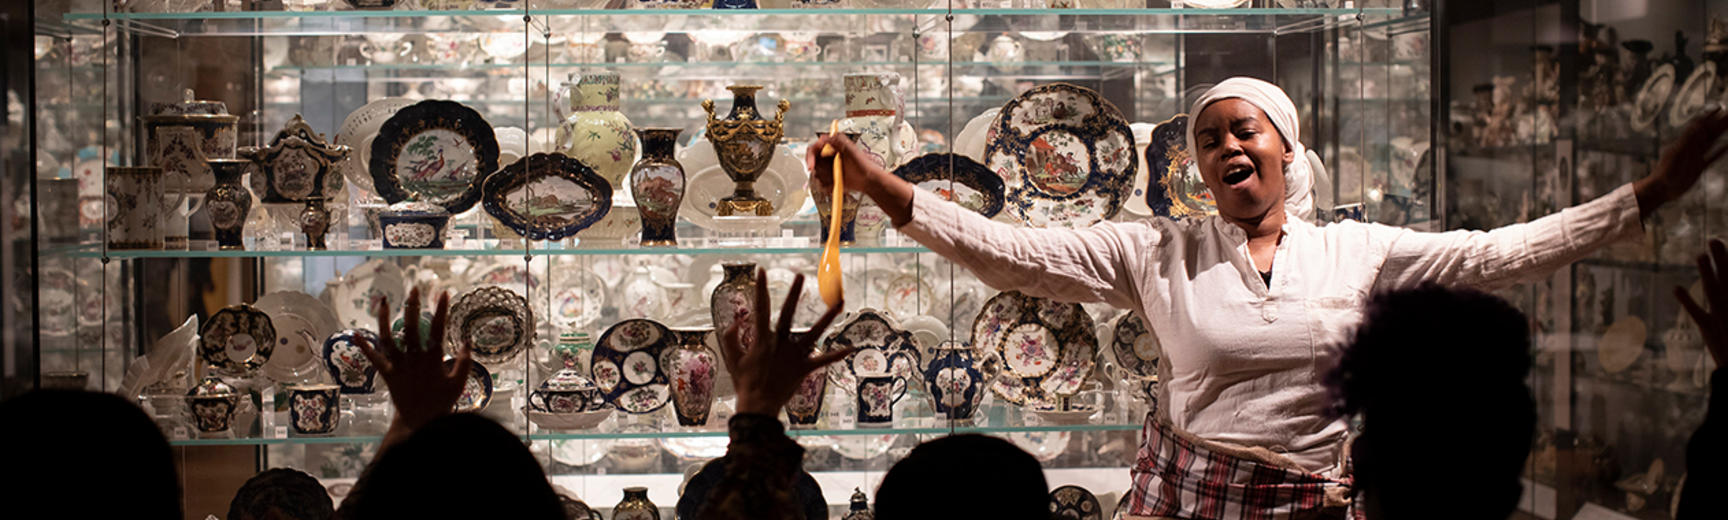 European Ceramics Gallery at the Ashmolean